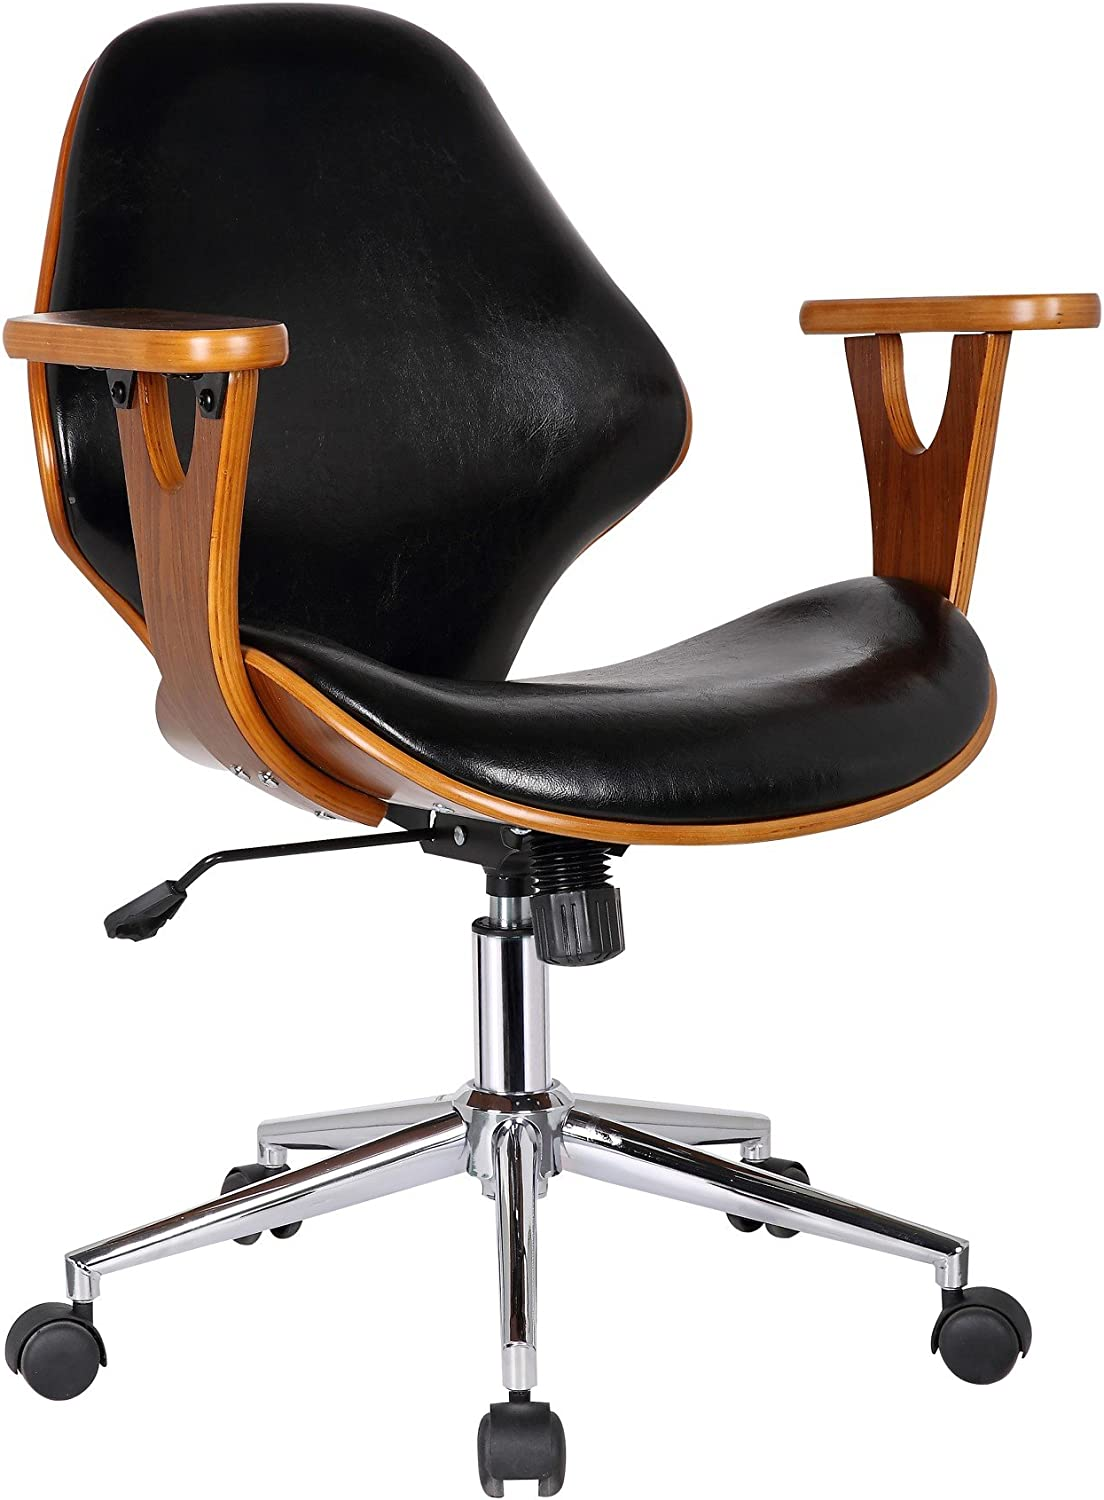 Porthos Home Lilian Office Chairs In Mid Century Modern Design with Arm Rests, Leather Upholstery, Height Adjustment & Stainless Steel Legs, Black